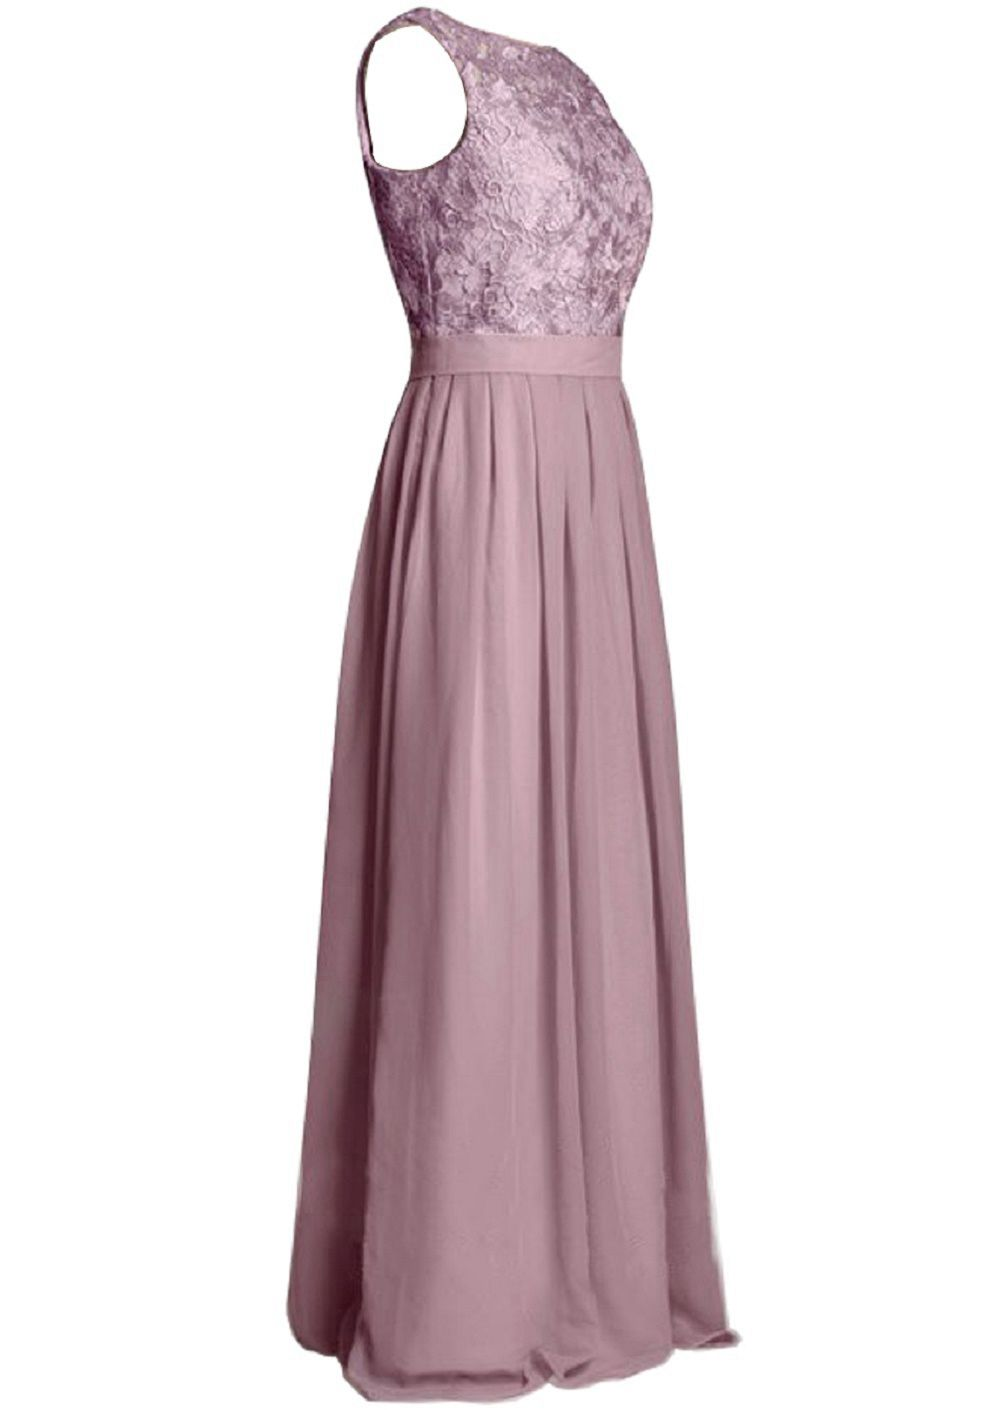 Pink Lace Bridesmaid Dress Long 2019 Scoop Applique Wedding Party Gown Sleeveless Chiffon Floor Length Beach Garden Women Dress